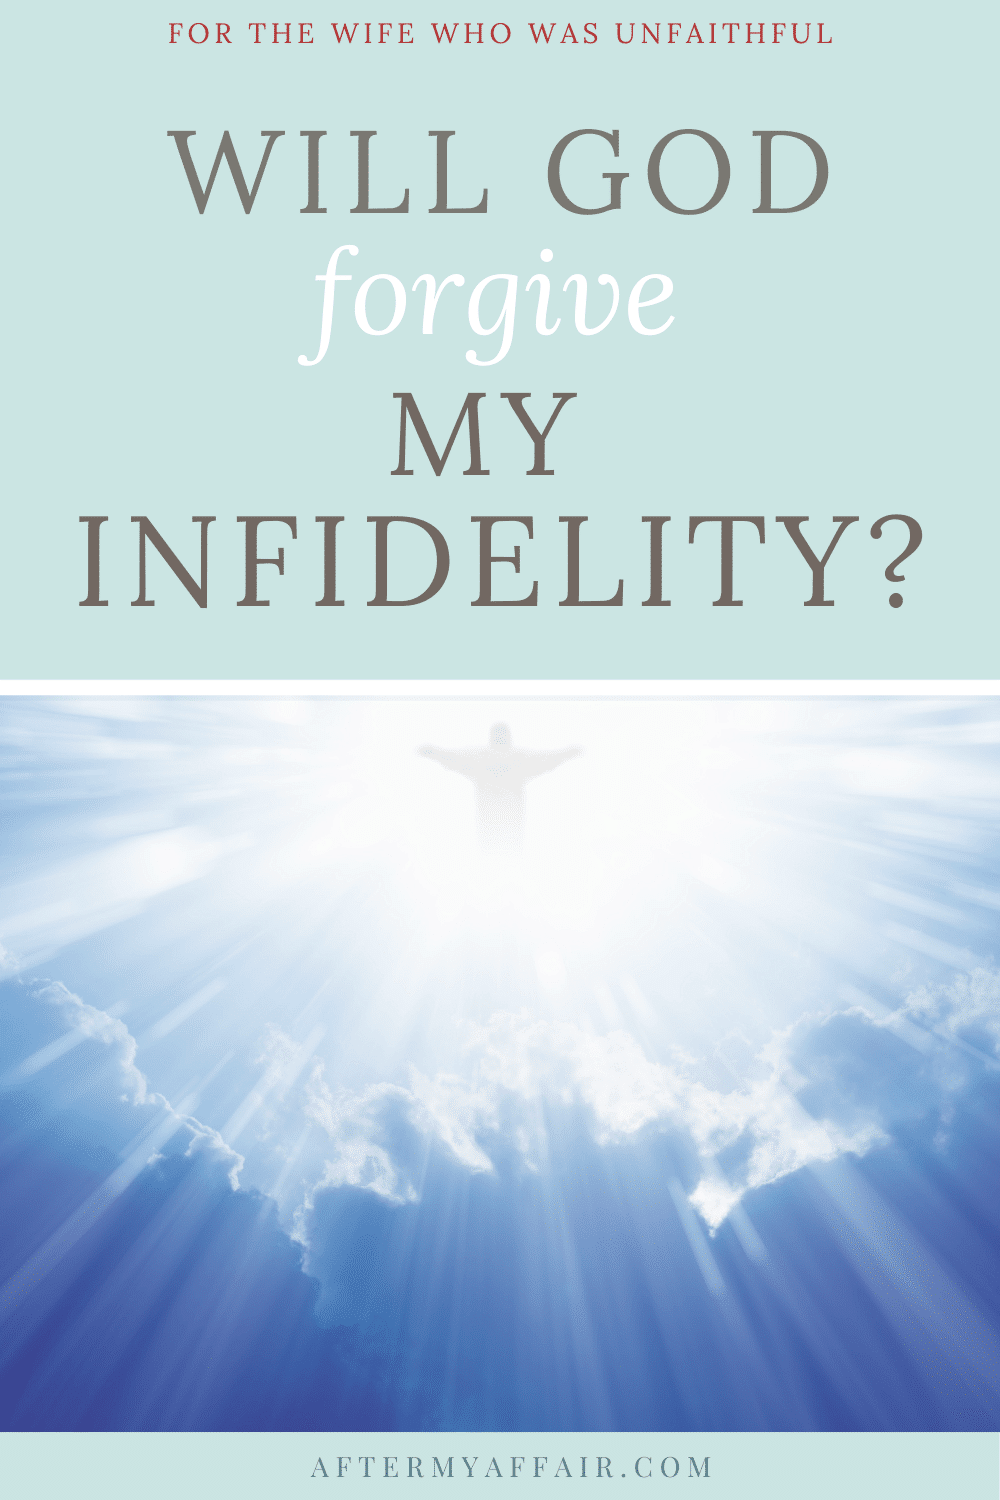 will god forgive my infidelity - After My Affair